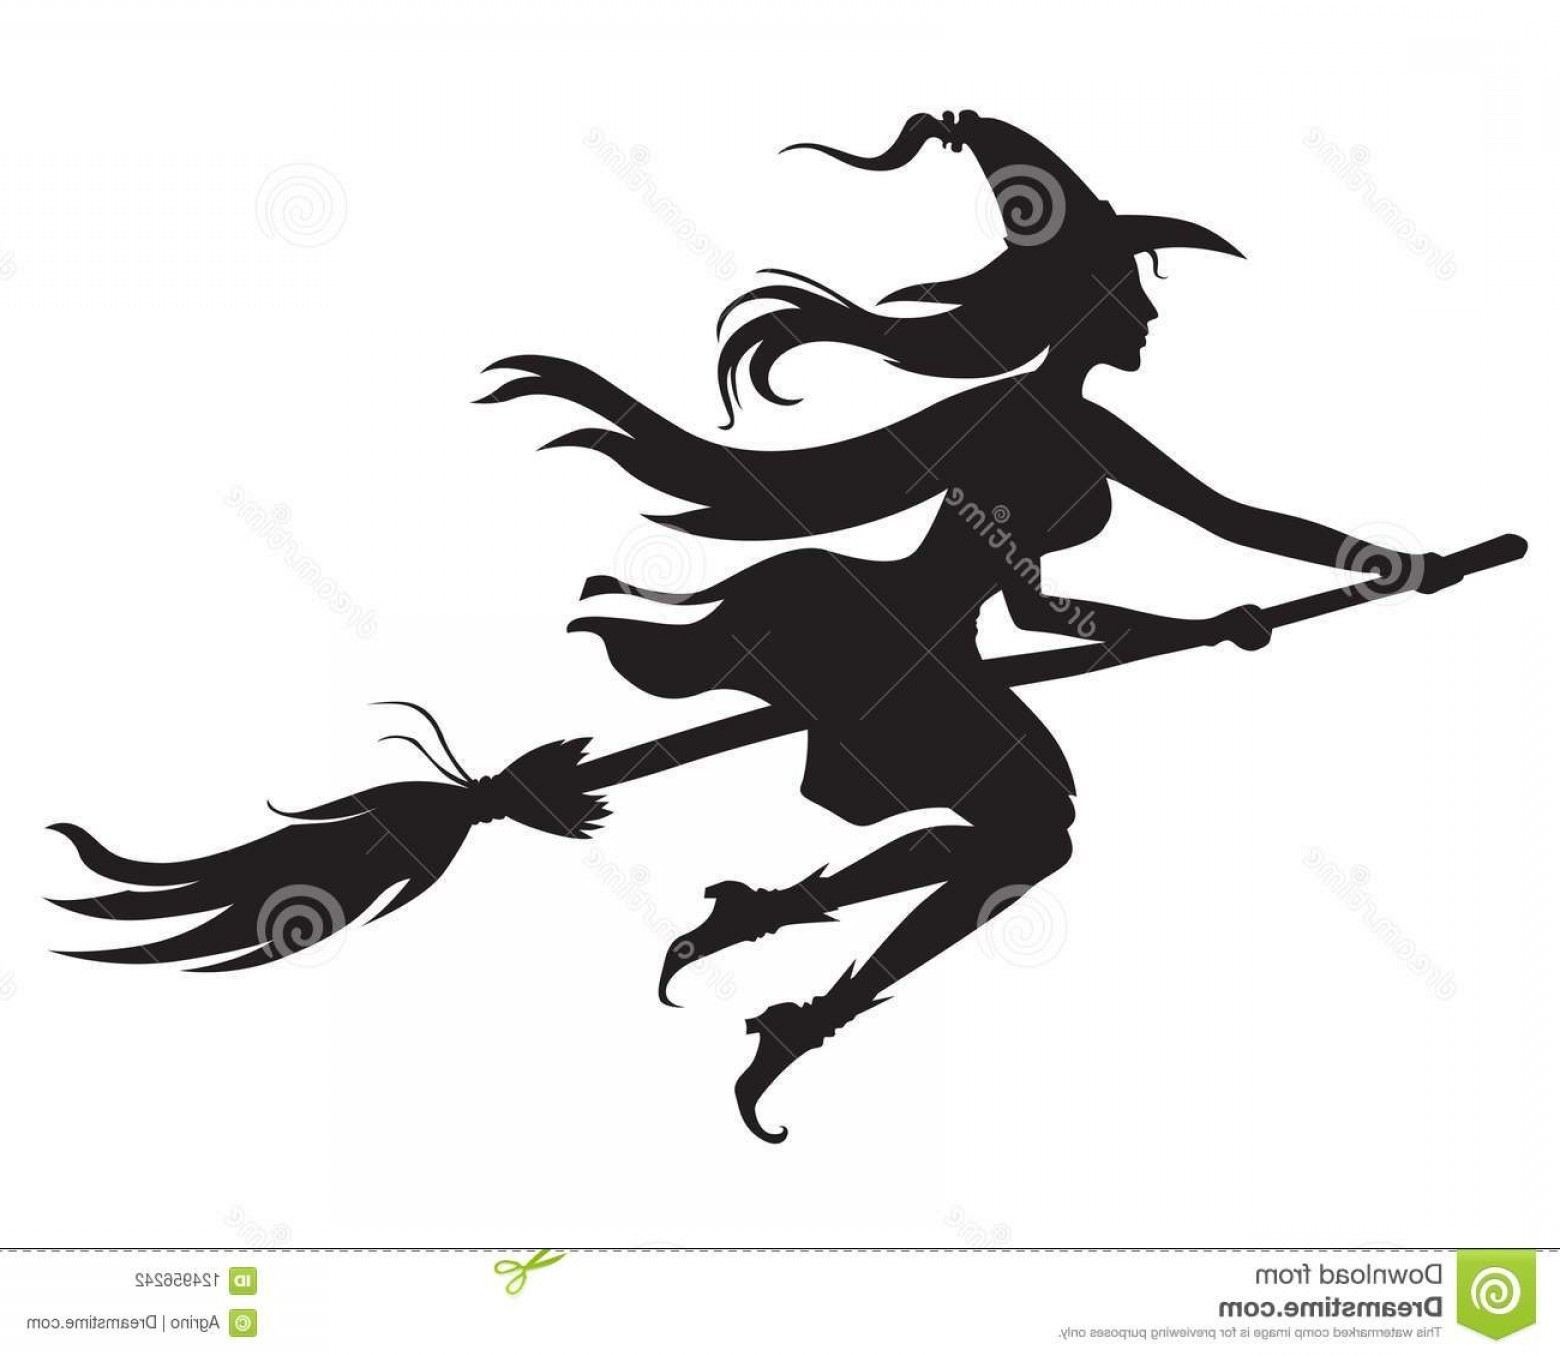 Witch Silhouette Vector: Vector Illustrations Halloween Silhouette Witch Hat Broom Fly Halloween Witch Silhouette Image